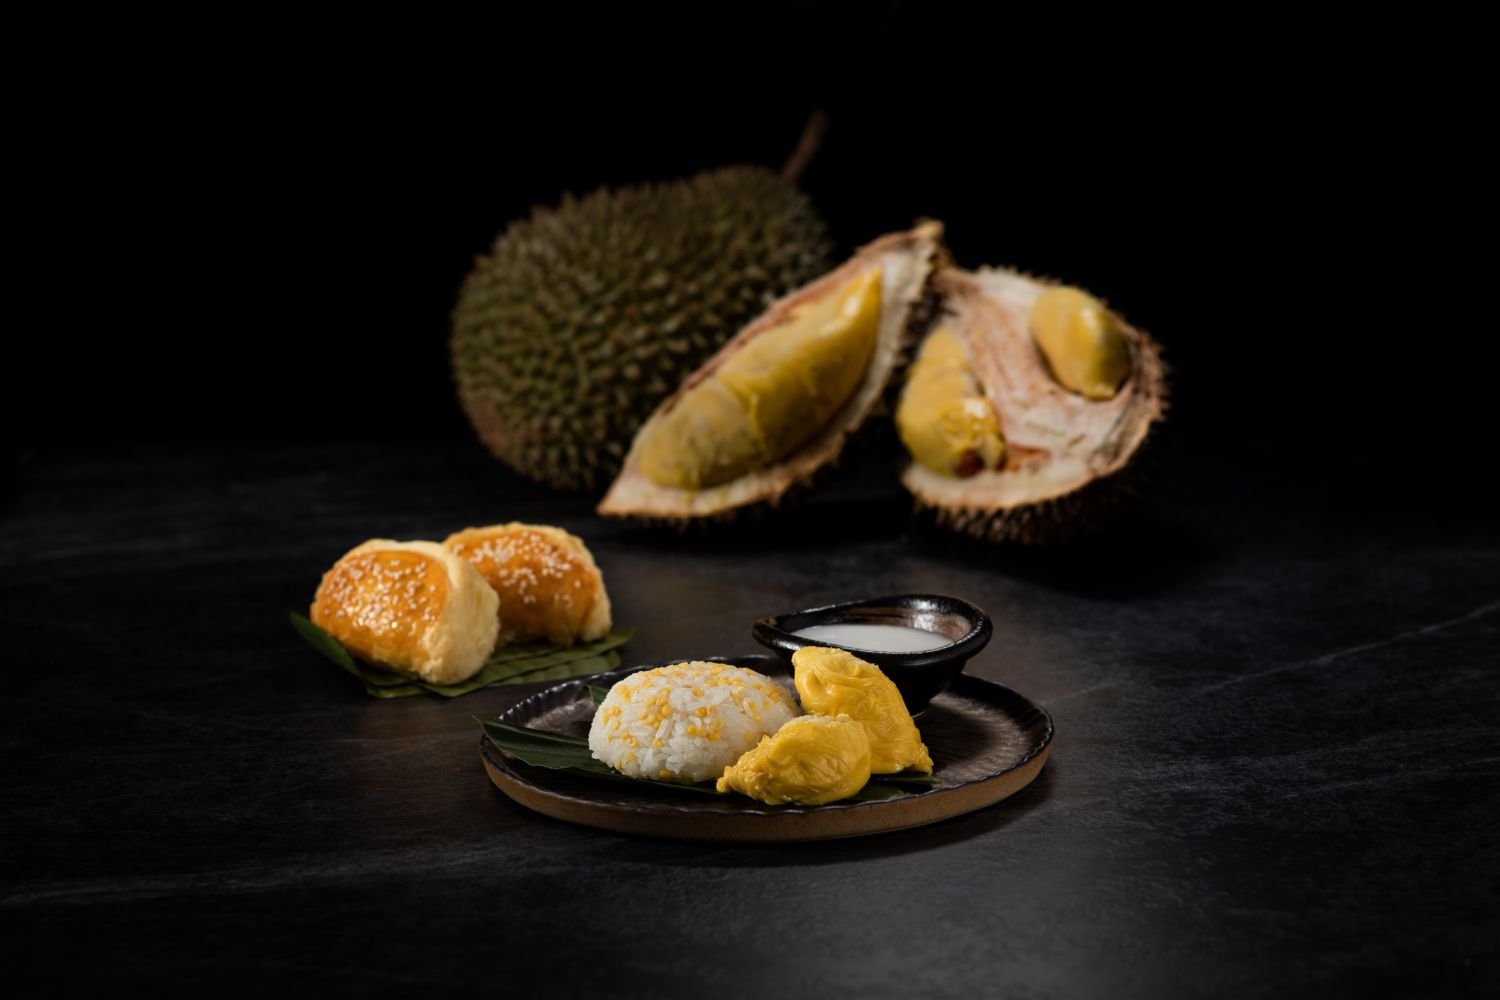 7th Malaysian Food Festival at Galaxy Macau Grilled Durian Sticky Rice Musang King Durian and Bird Nest Pastries